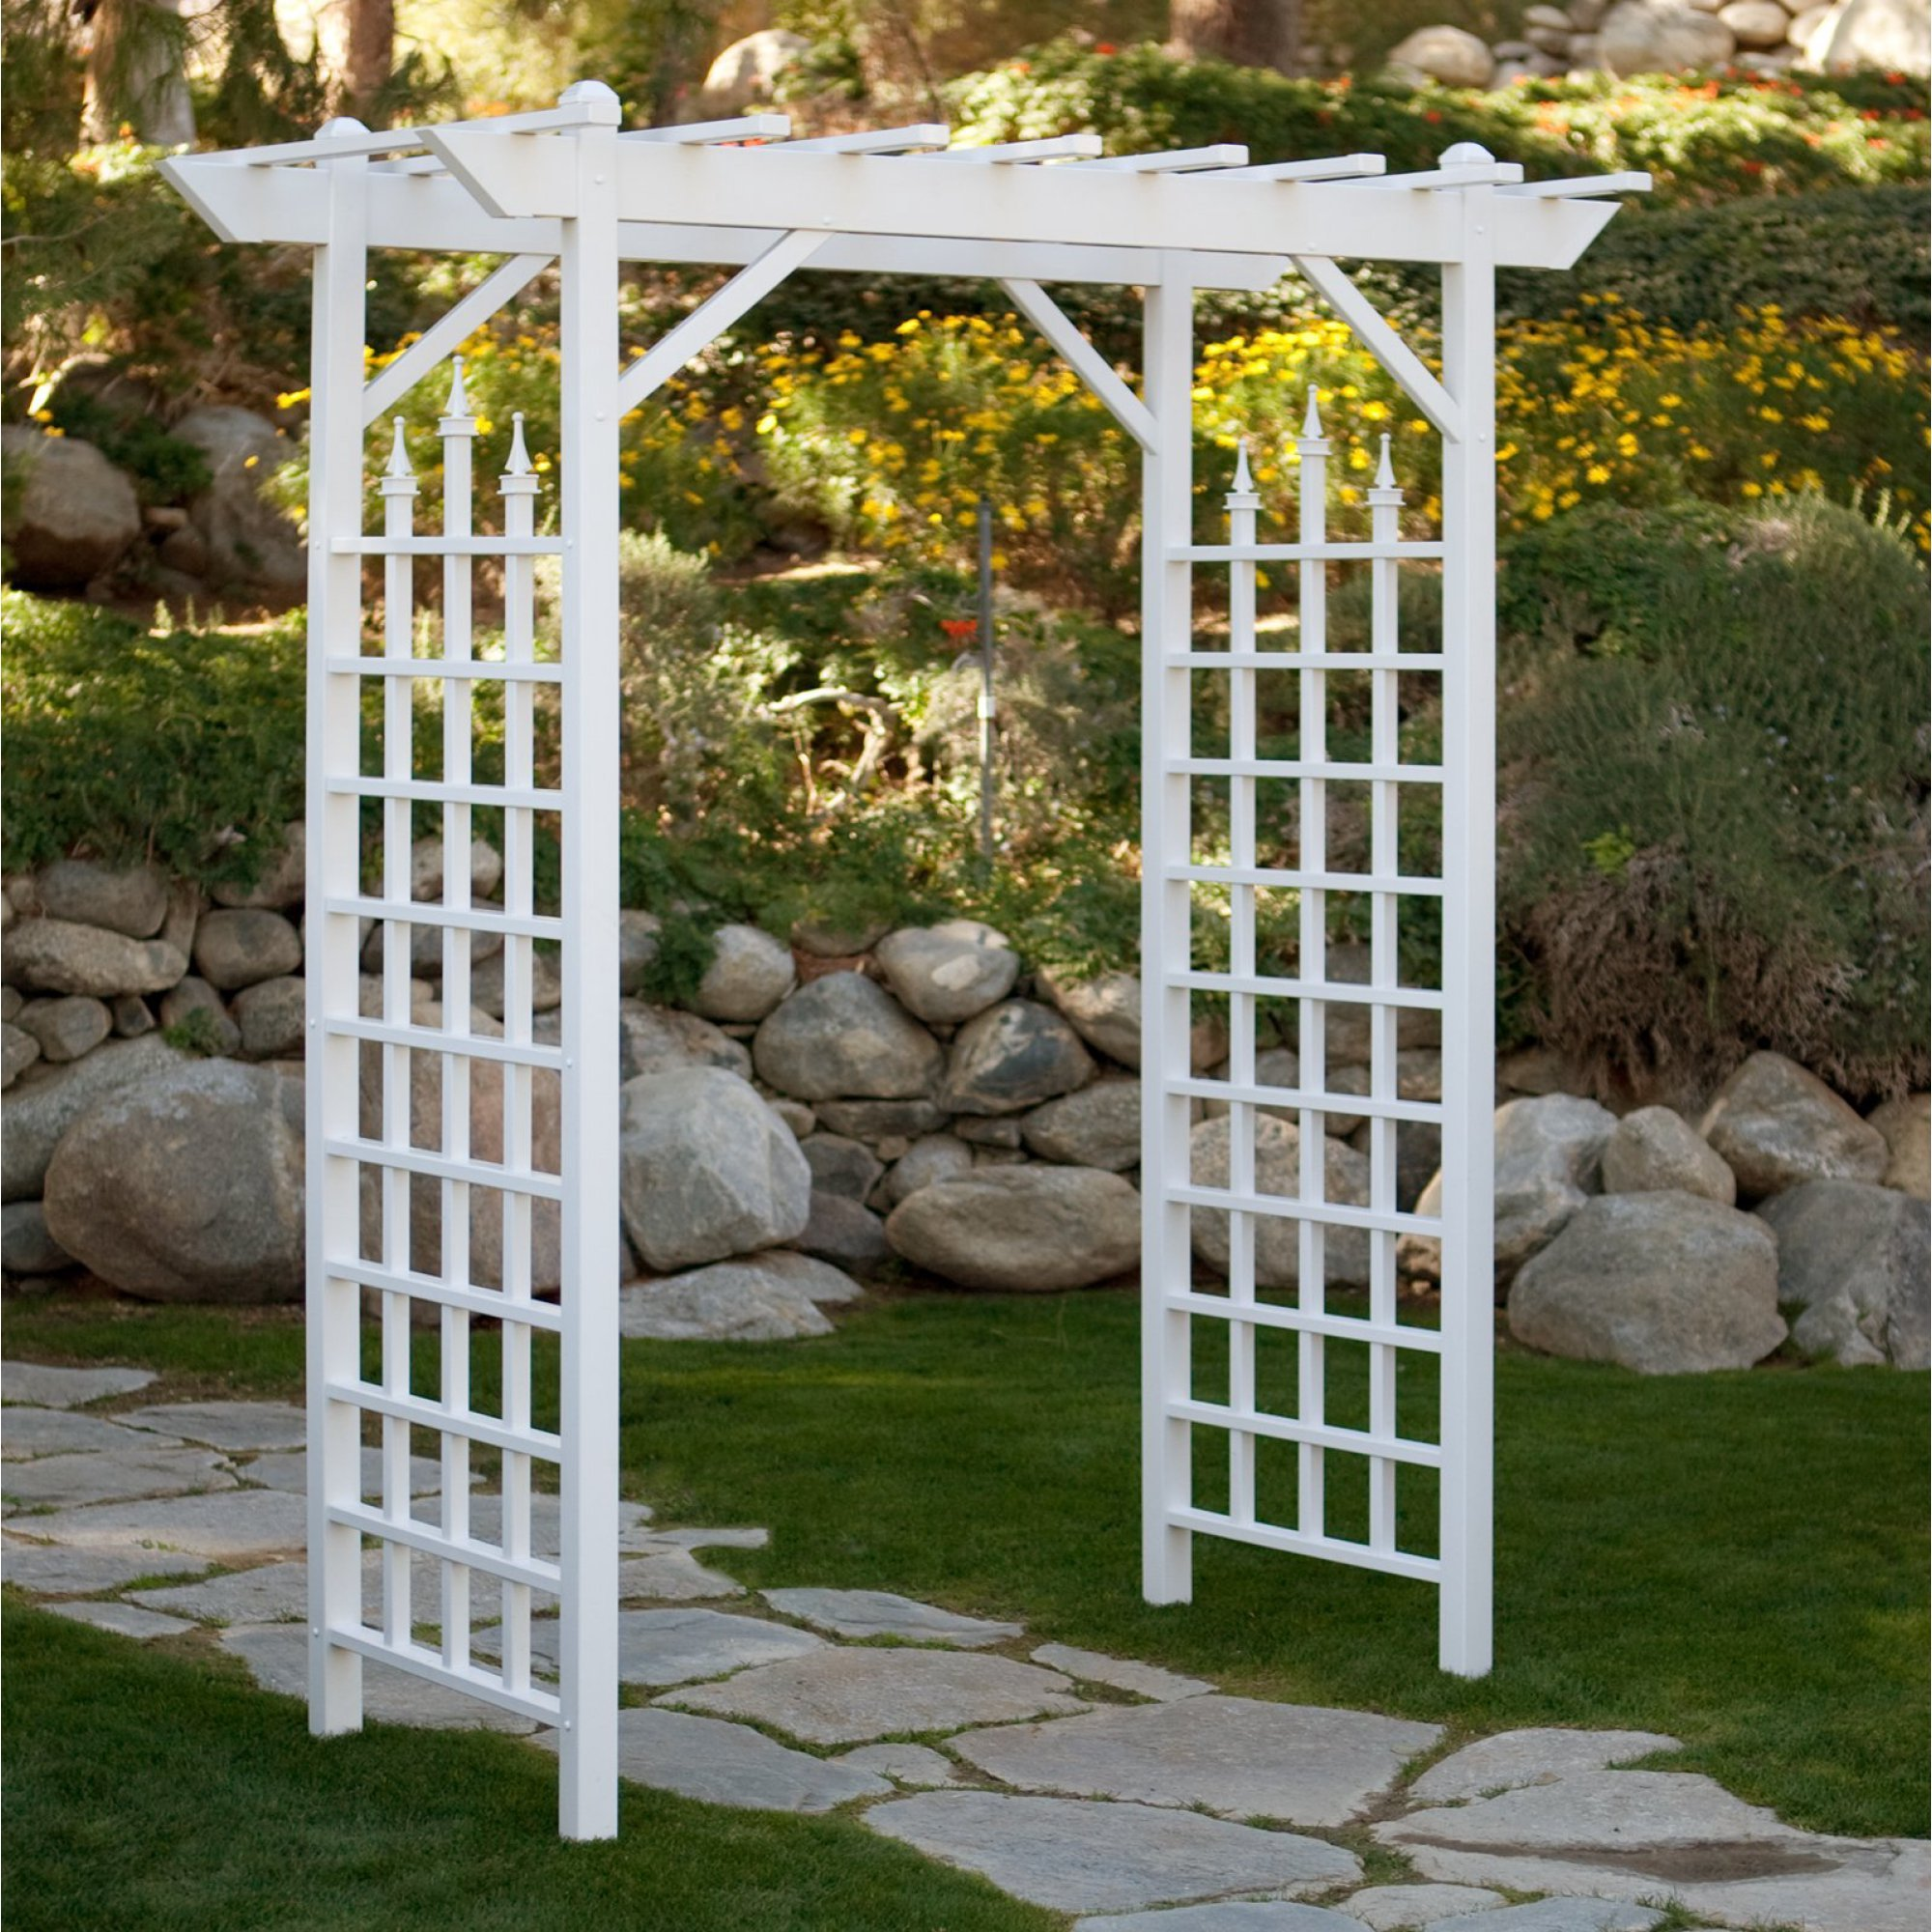 Camelot 7-ft. Vinyl Pergola Arbor, High-Grade PVC Vinyl Construction, UV-Protected, 14-inch Anchor Stakes, Durable and Maintenance-Free, Easy Assembly